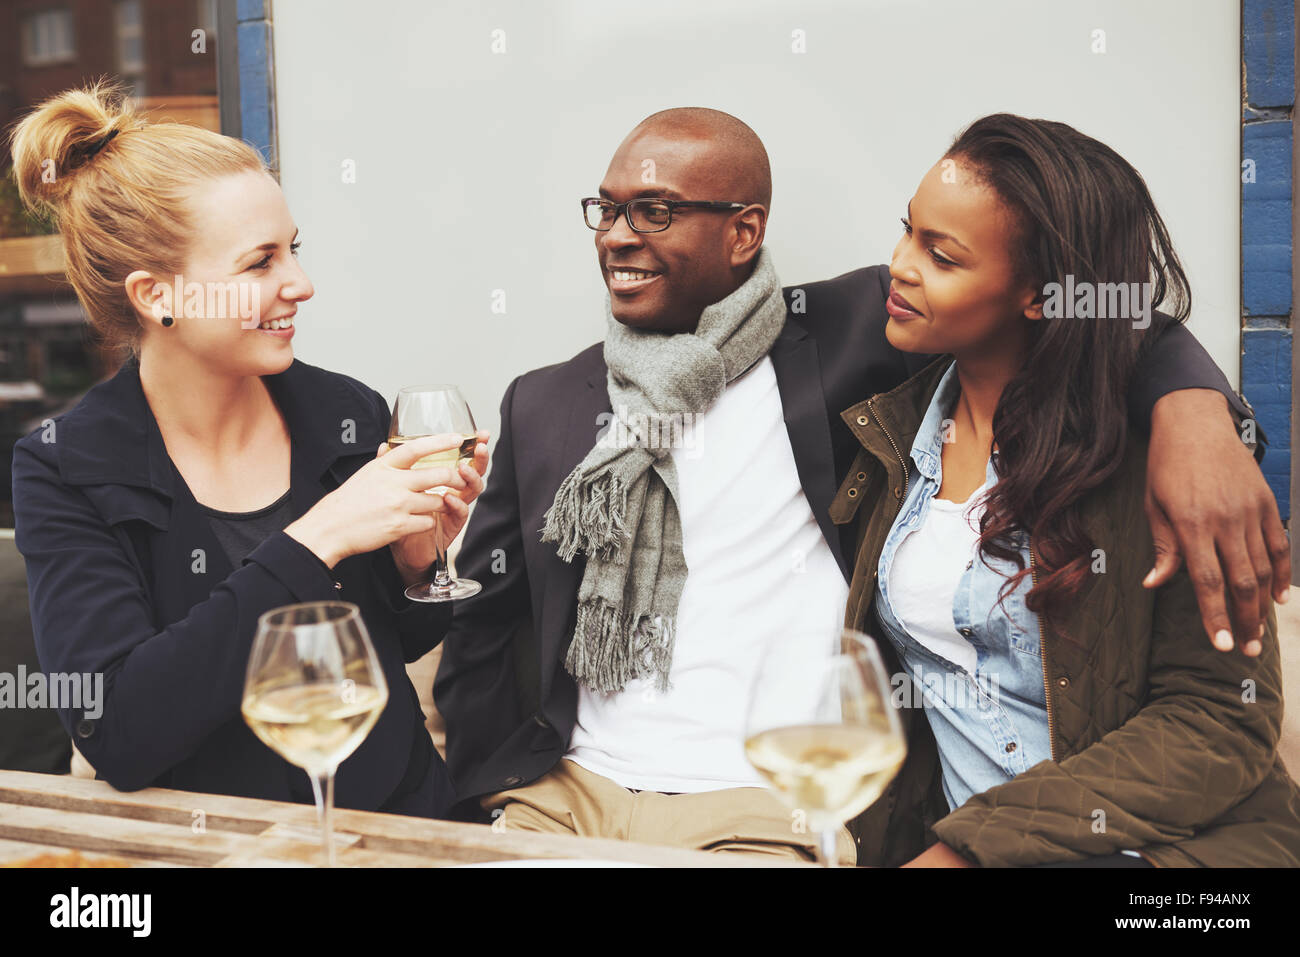 Friends having a conversation at a cafe multi racial friendship - Stock Image